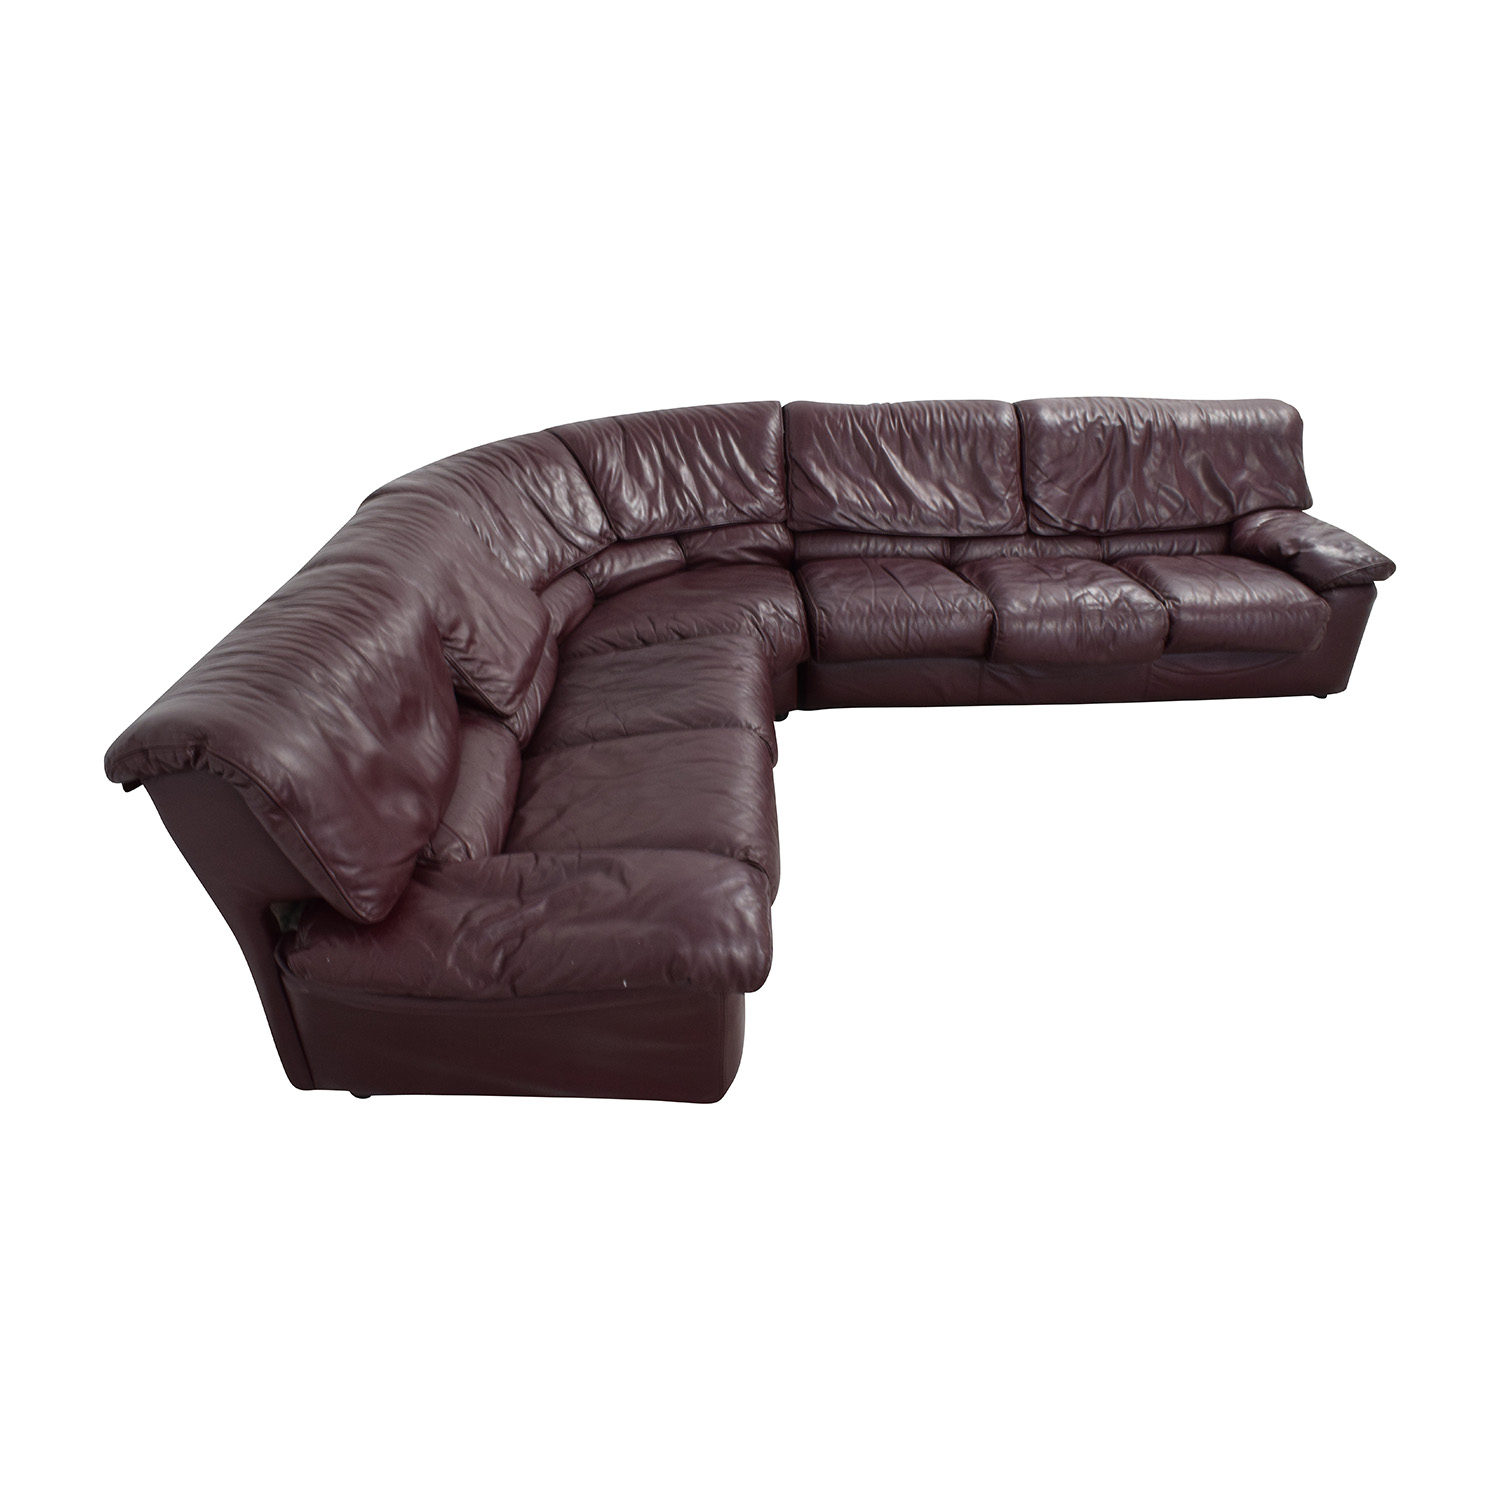 Roche Bobois Roche Bobois Brown Leather Sectional nyc